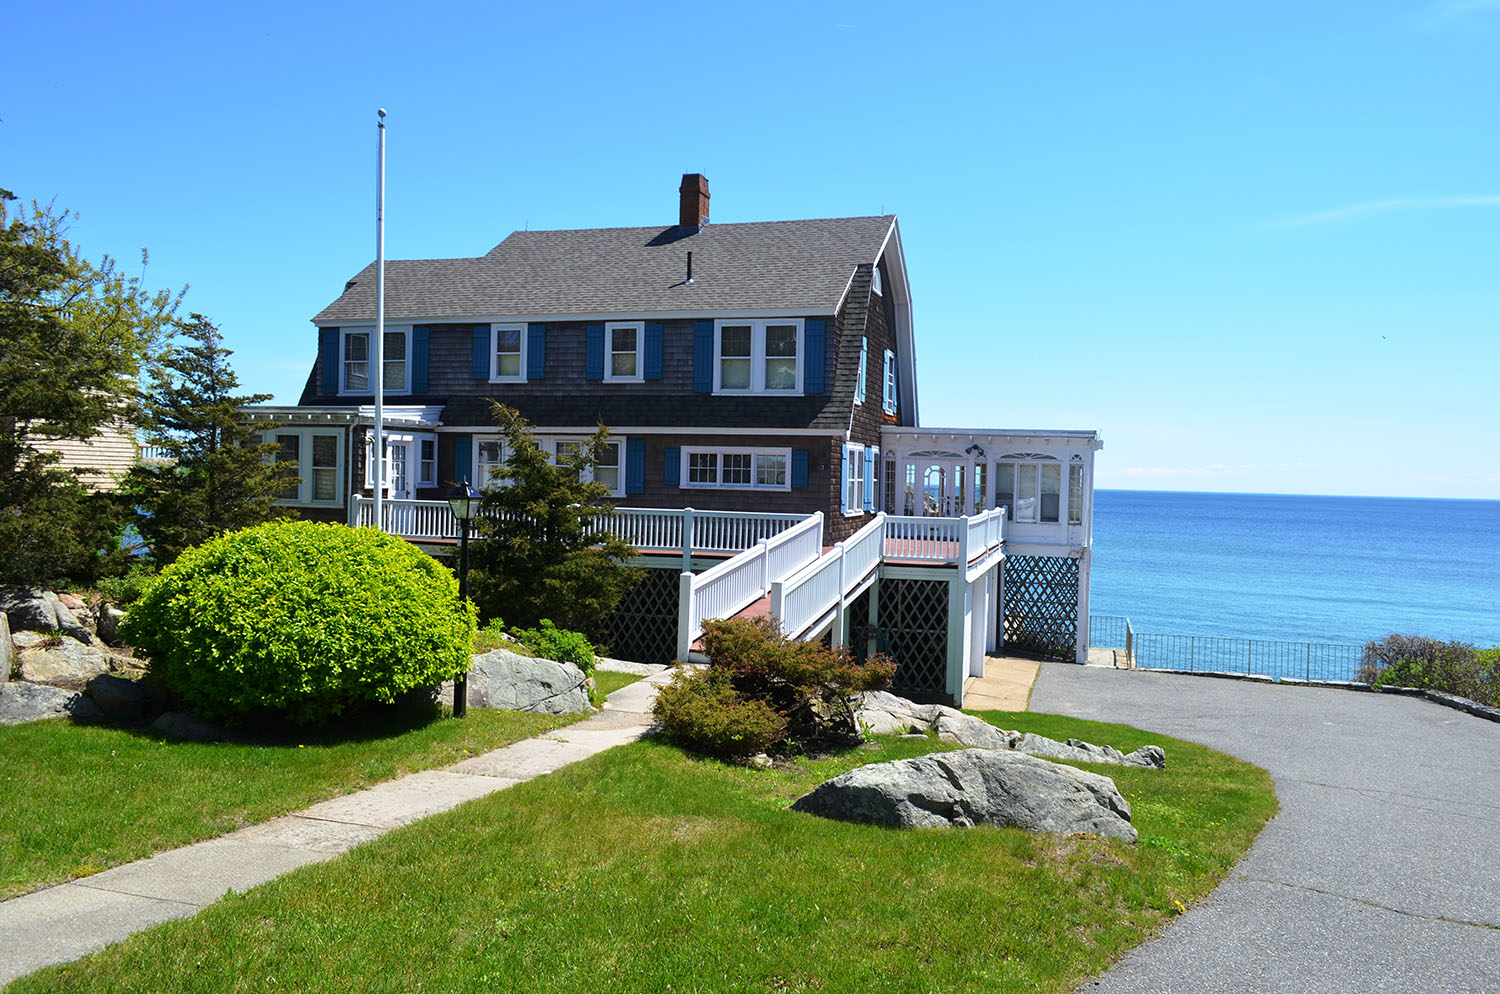 Direct Waterfront Vacation Rentals - Atlantic Vacation Homes - Cape Ann